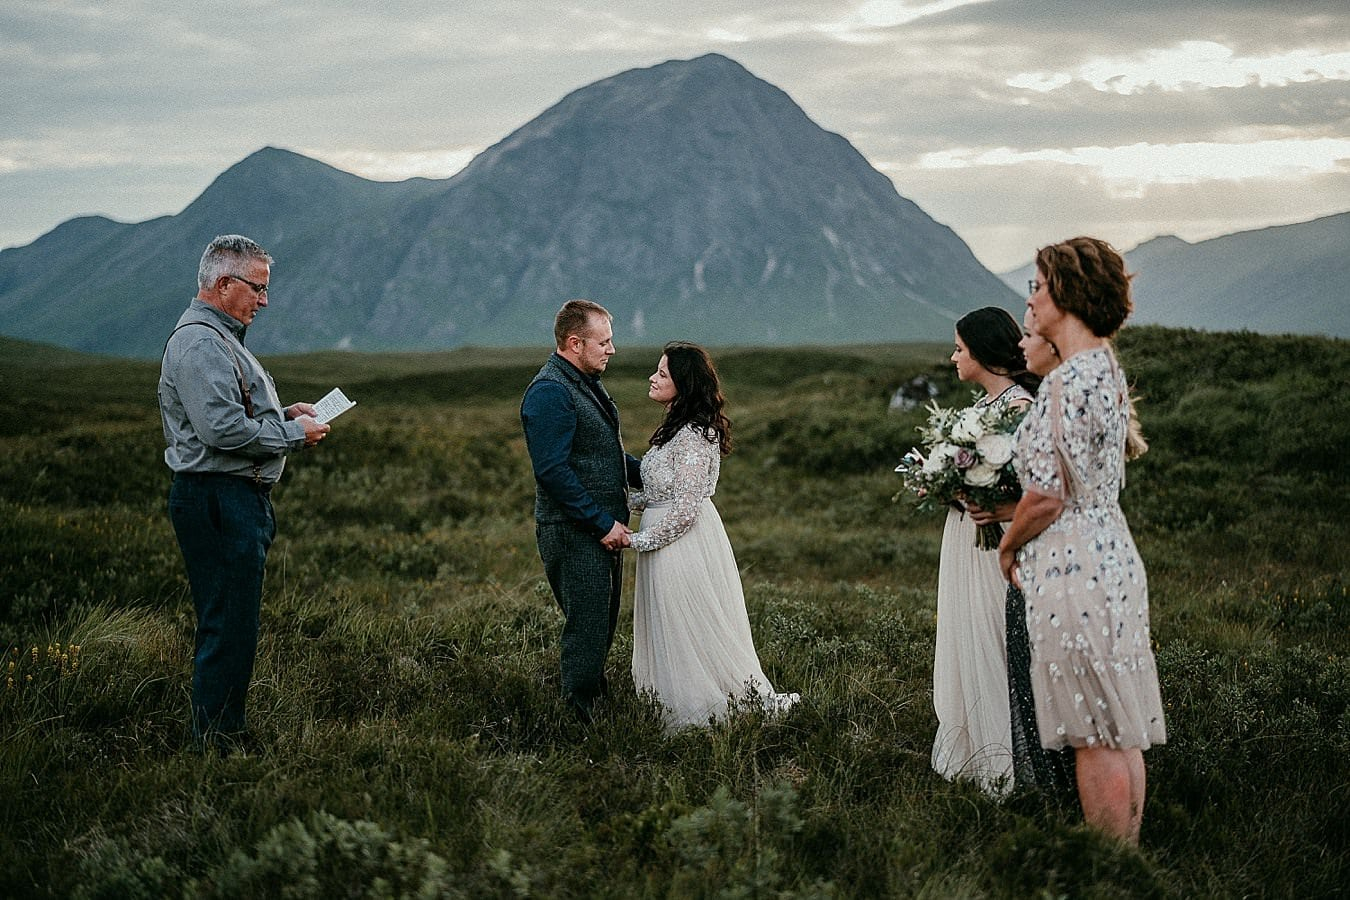 elopement ceremony ideas to have the best adventure elopement ever!